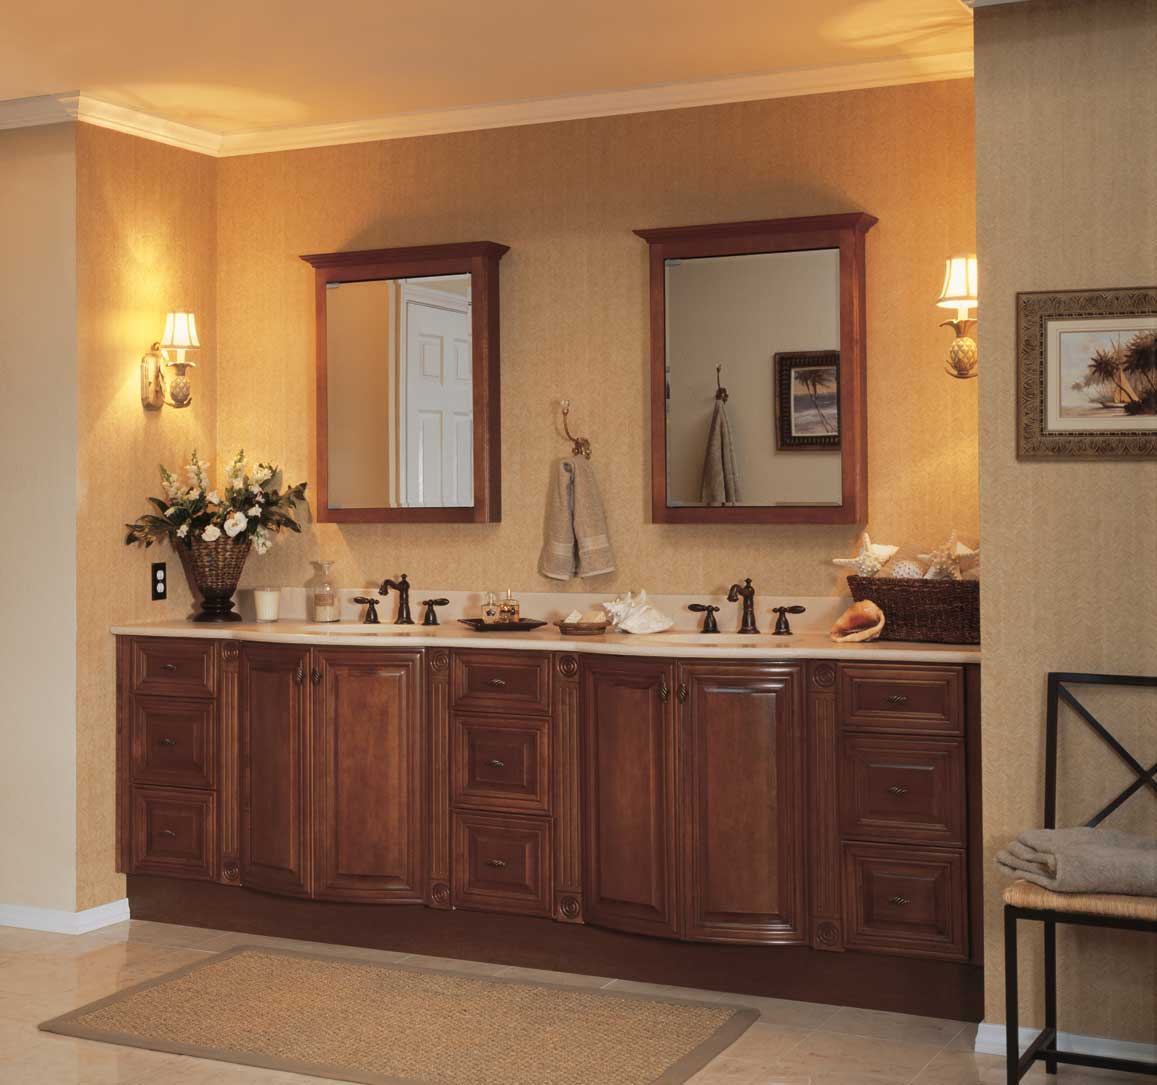 Bathroom Cabinets: Home Ideas & Home Designs